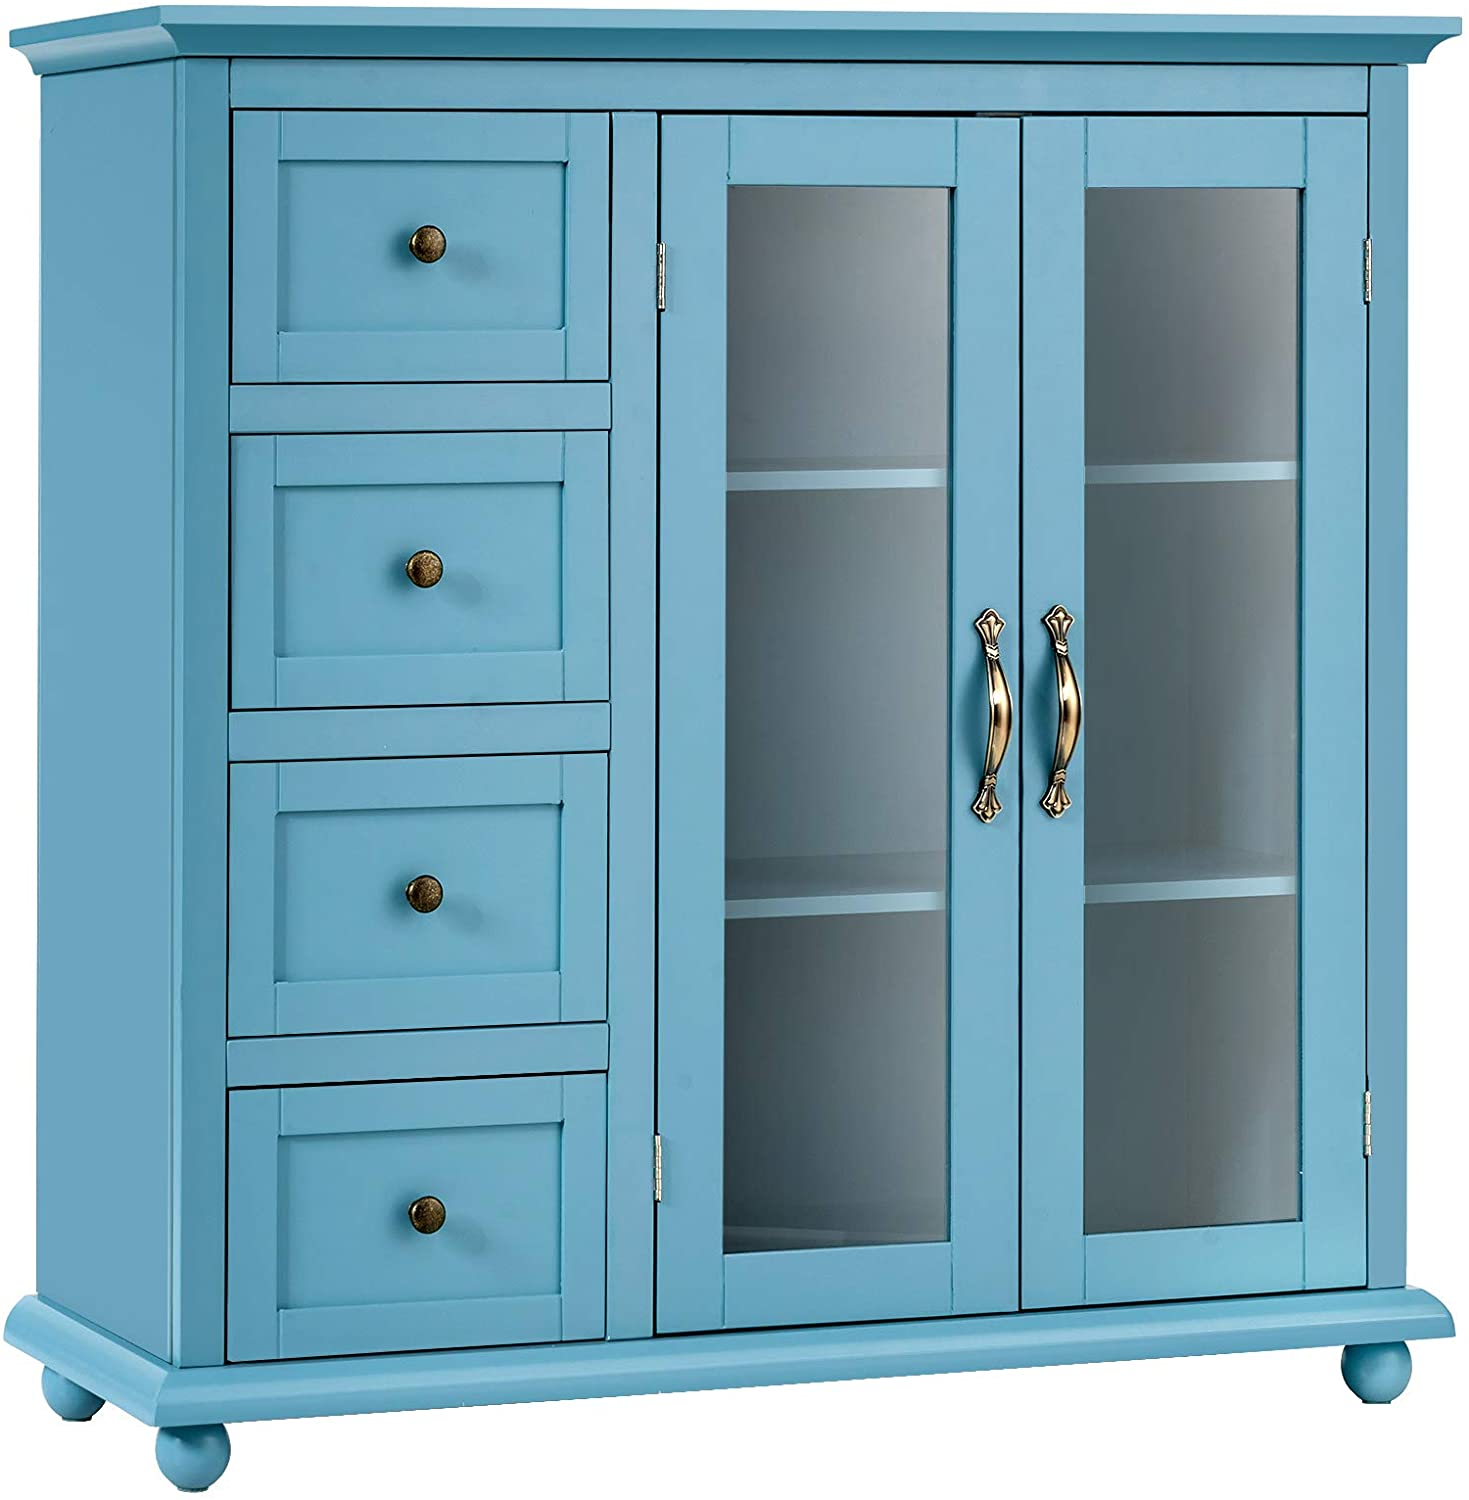 Giantex Buffet Sideboard, Wood Storage Cabinet, Console Table with 4 Drawers, 2-Door Credenza, Living Room Dining Room Furniture, Buffet Server, Kitchen Pantry Cupboard (Blue)